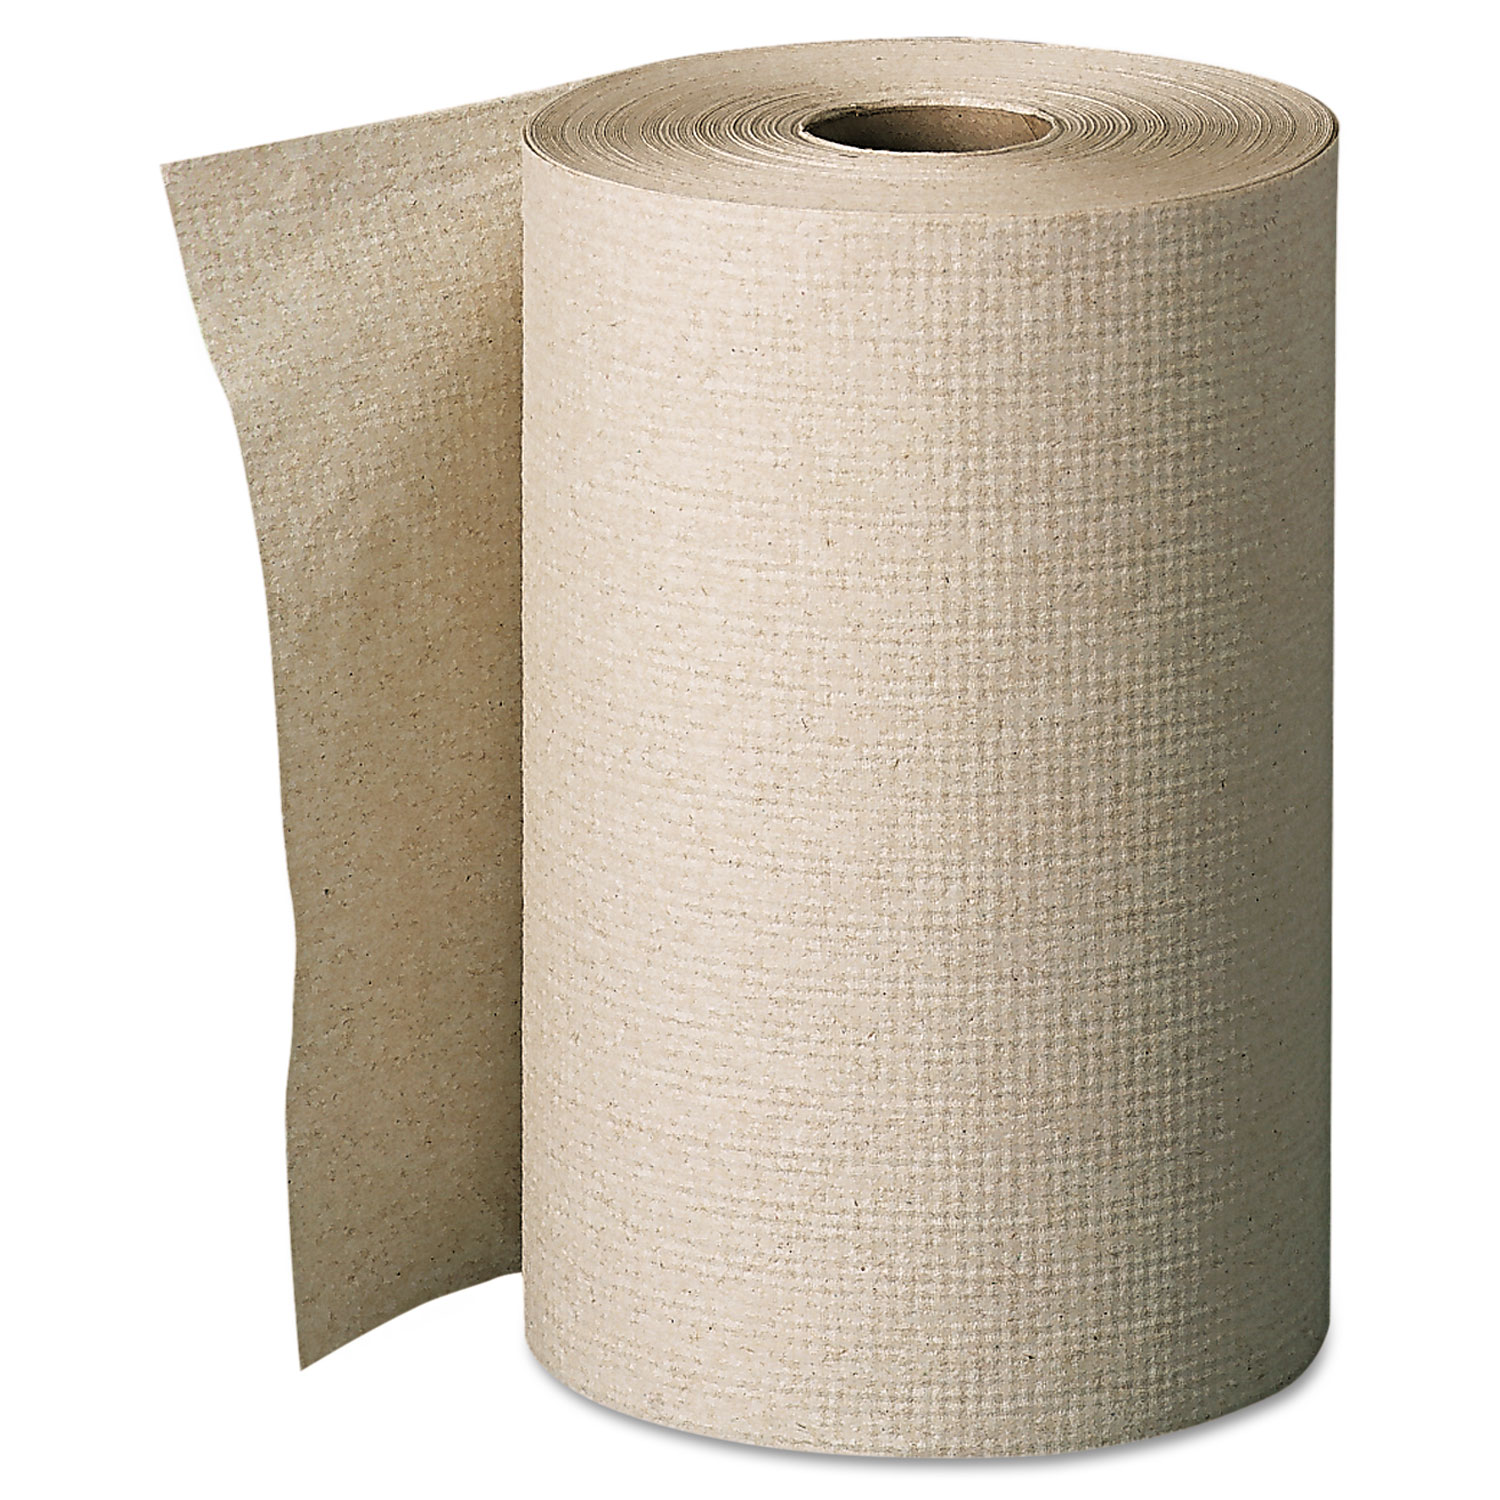 Pacific Blue Basic Nonperforated Paper Towels, 7 7/8 x 350ft, Brown, 12 Rolls/CT